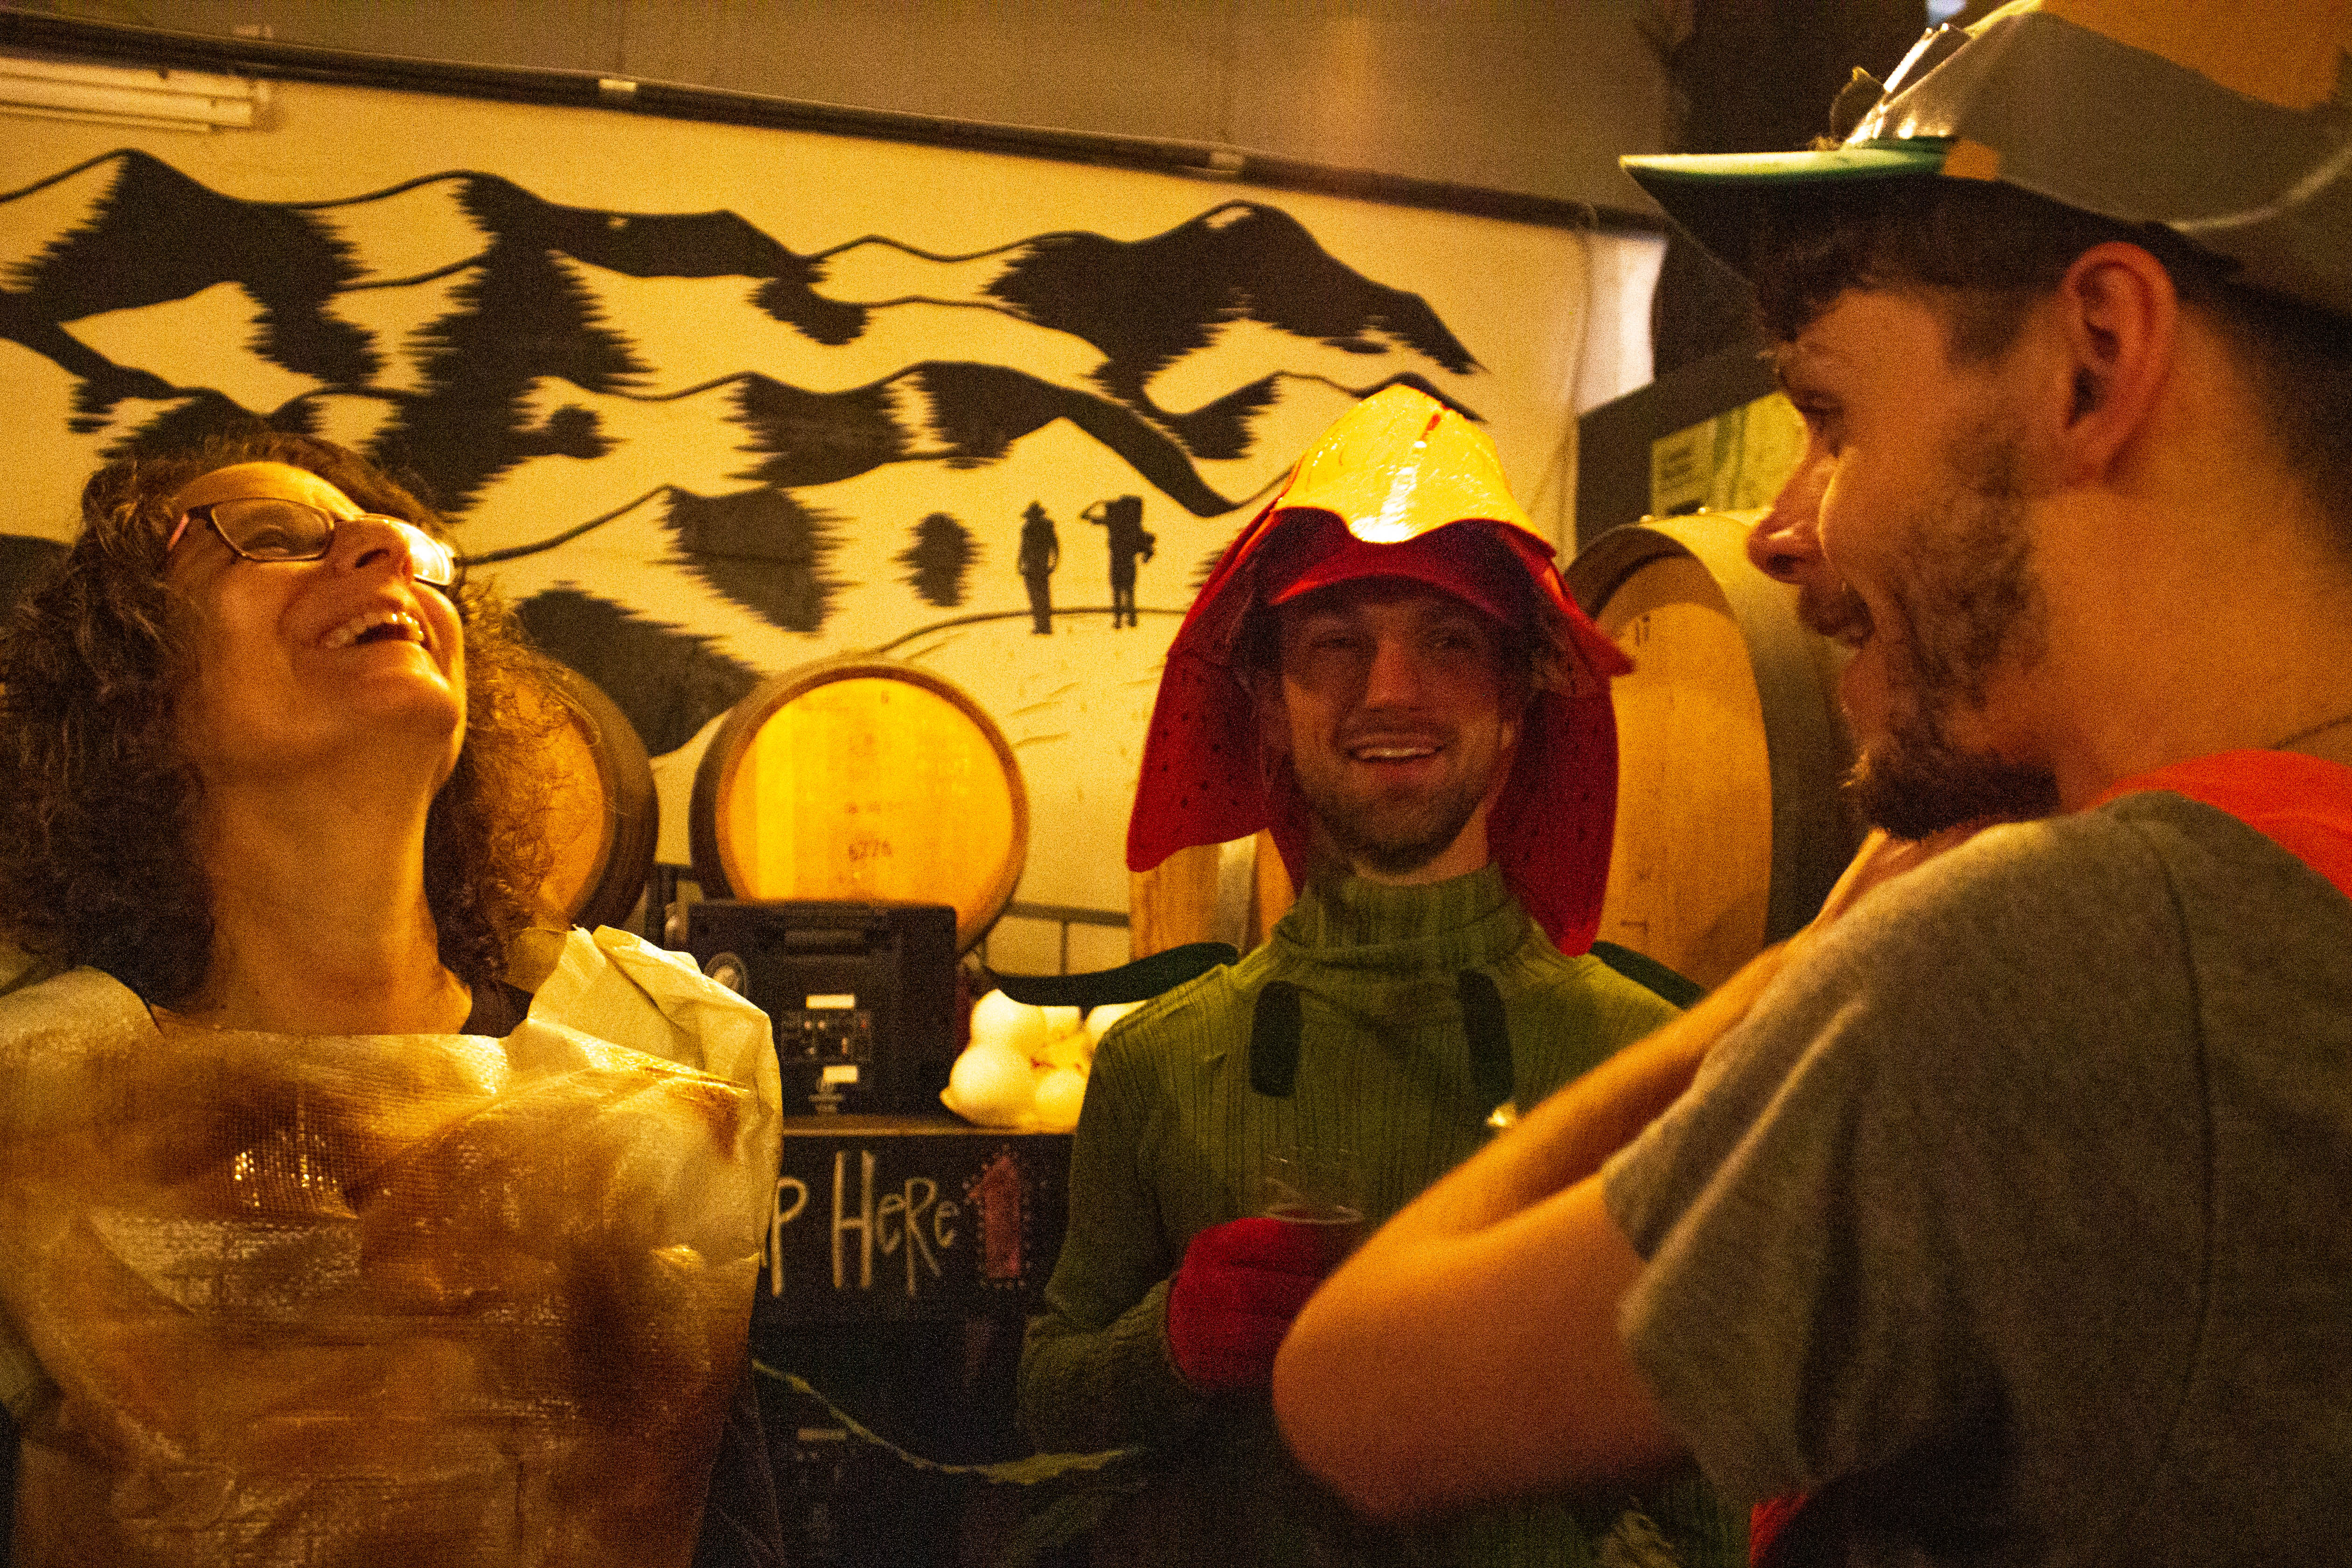 three people dressed in costume as a lichen, lily, and snail laugh at a bar